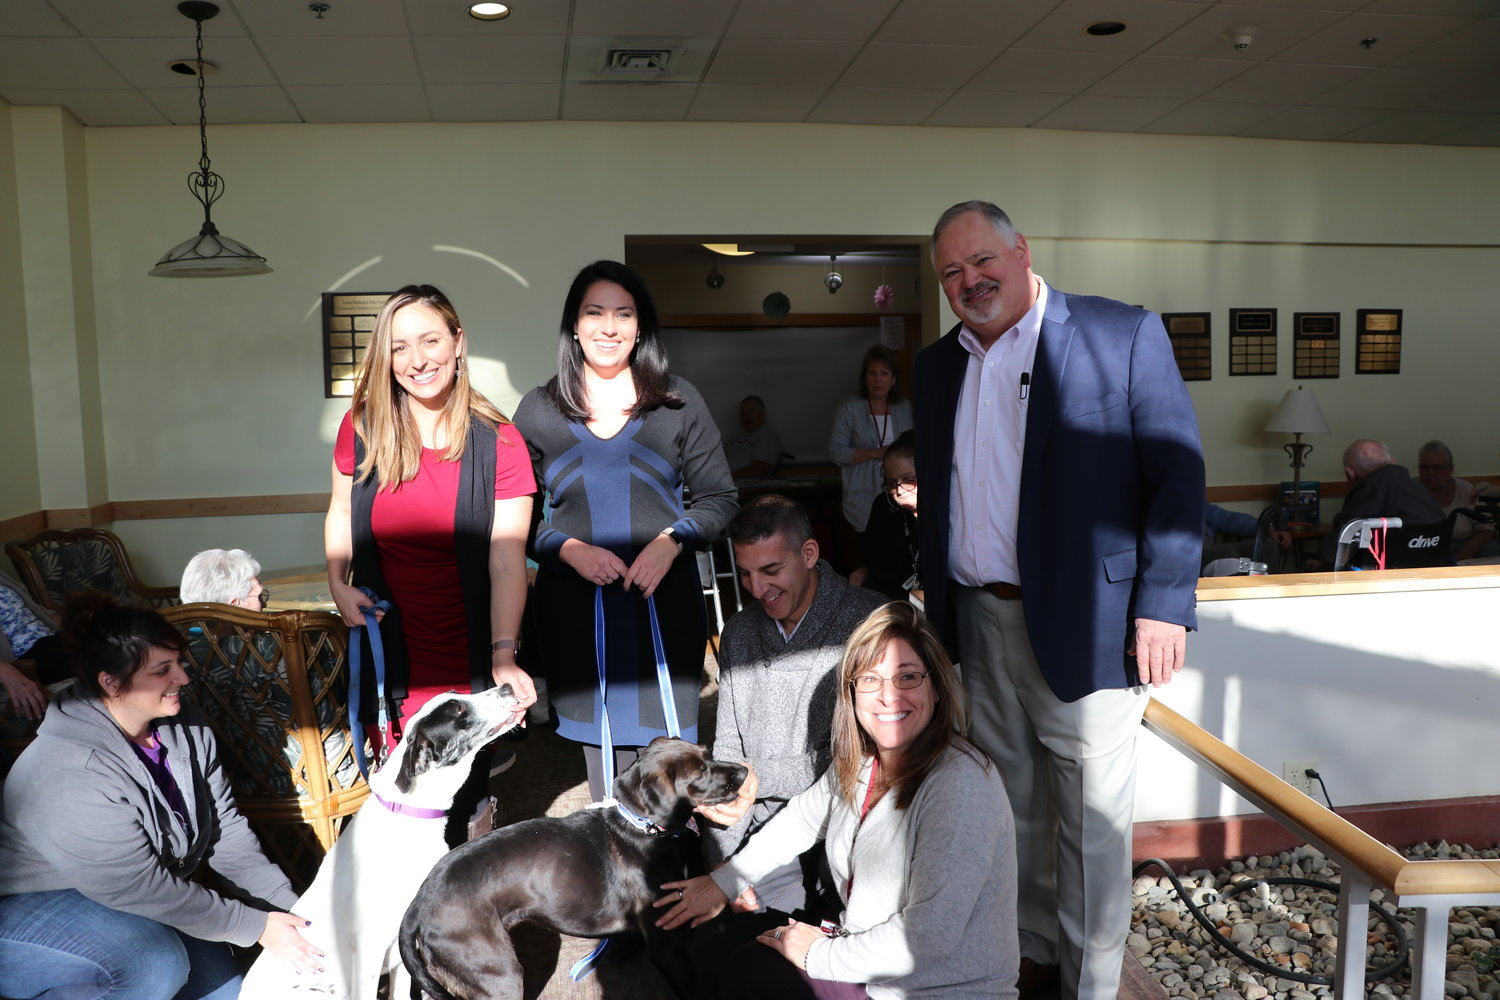 (Bottom row from left) RISPCA Volunteer Coordinator Samantha Nieva; RISPCA dog Magnolia; RISPCA dog Petunia; RISPCA President/General Agent Joe Warzycha, Jr.; Aldersbridge Communities Director of Development, Public Affairs & Philanthropy Elise Strom; (Top row from left) ABC 6 News Anchor Alana Cerrone; ABC 6 Meteorologist Chelsea Priest; Aldersbridge Communities Chief Executive Officer Richard Gamache. All pictured while ABC 6 on-air talent were visiting residents of Aldersbridge Communities in East Providence.